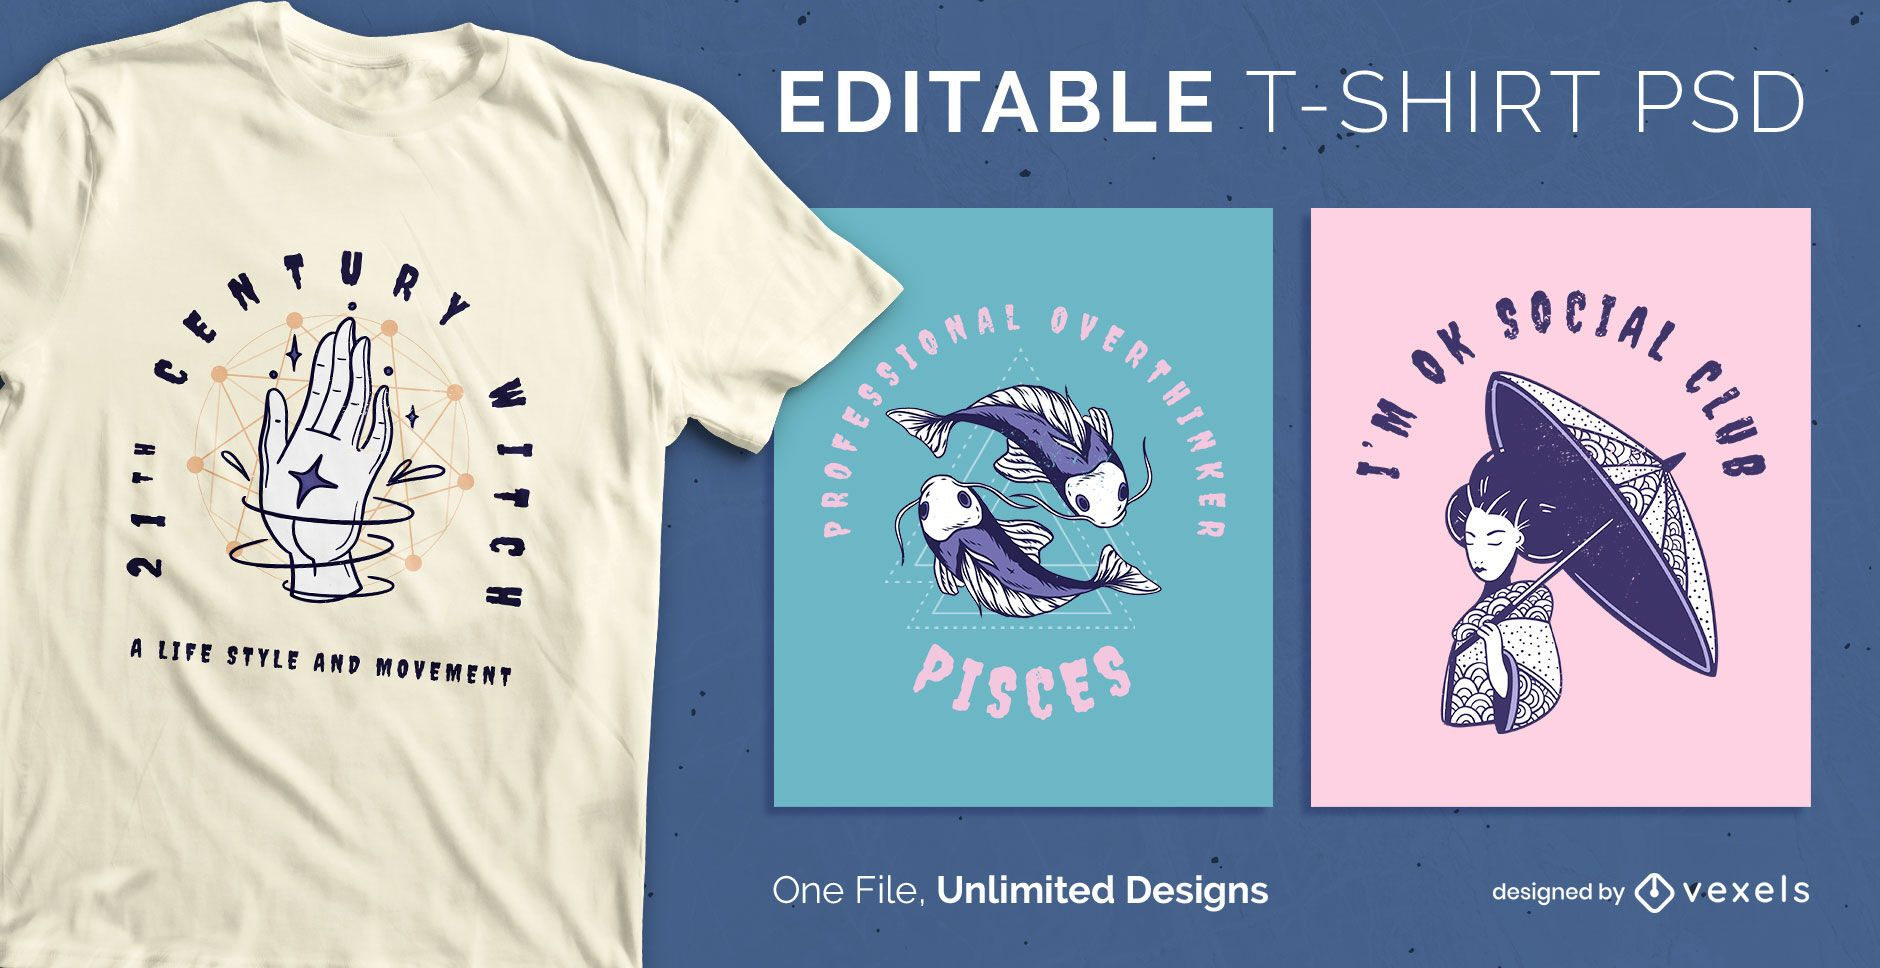 Curved text scalable t-shirt psd